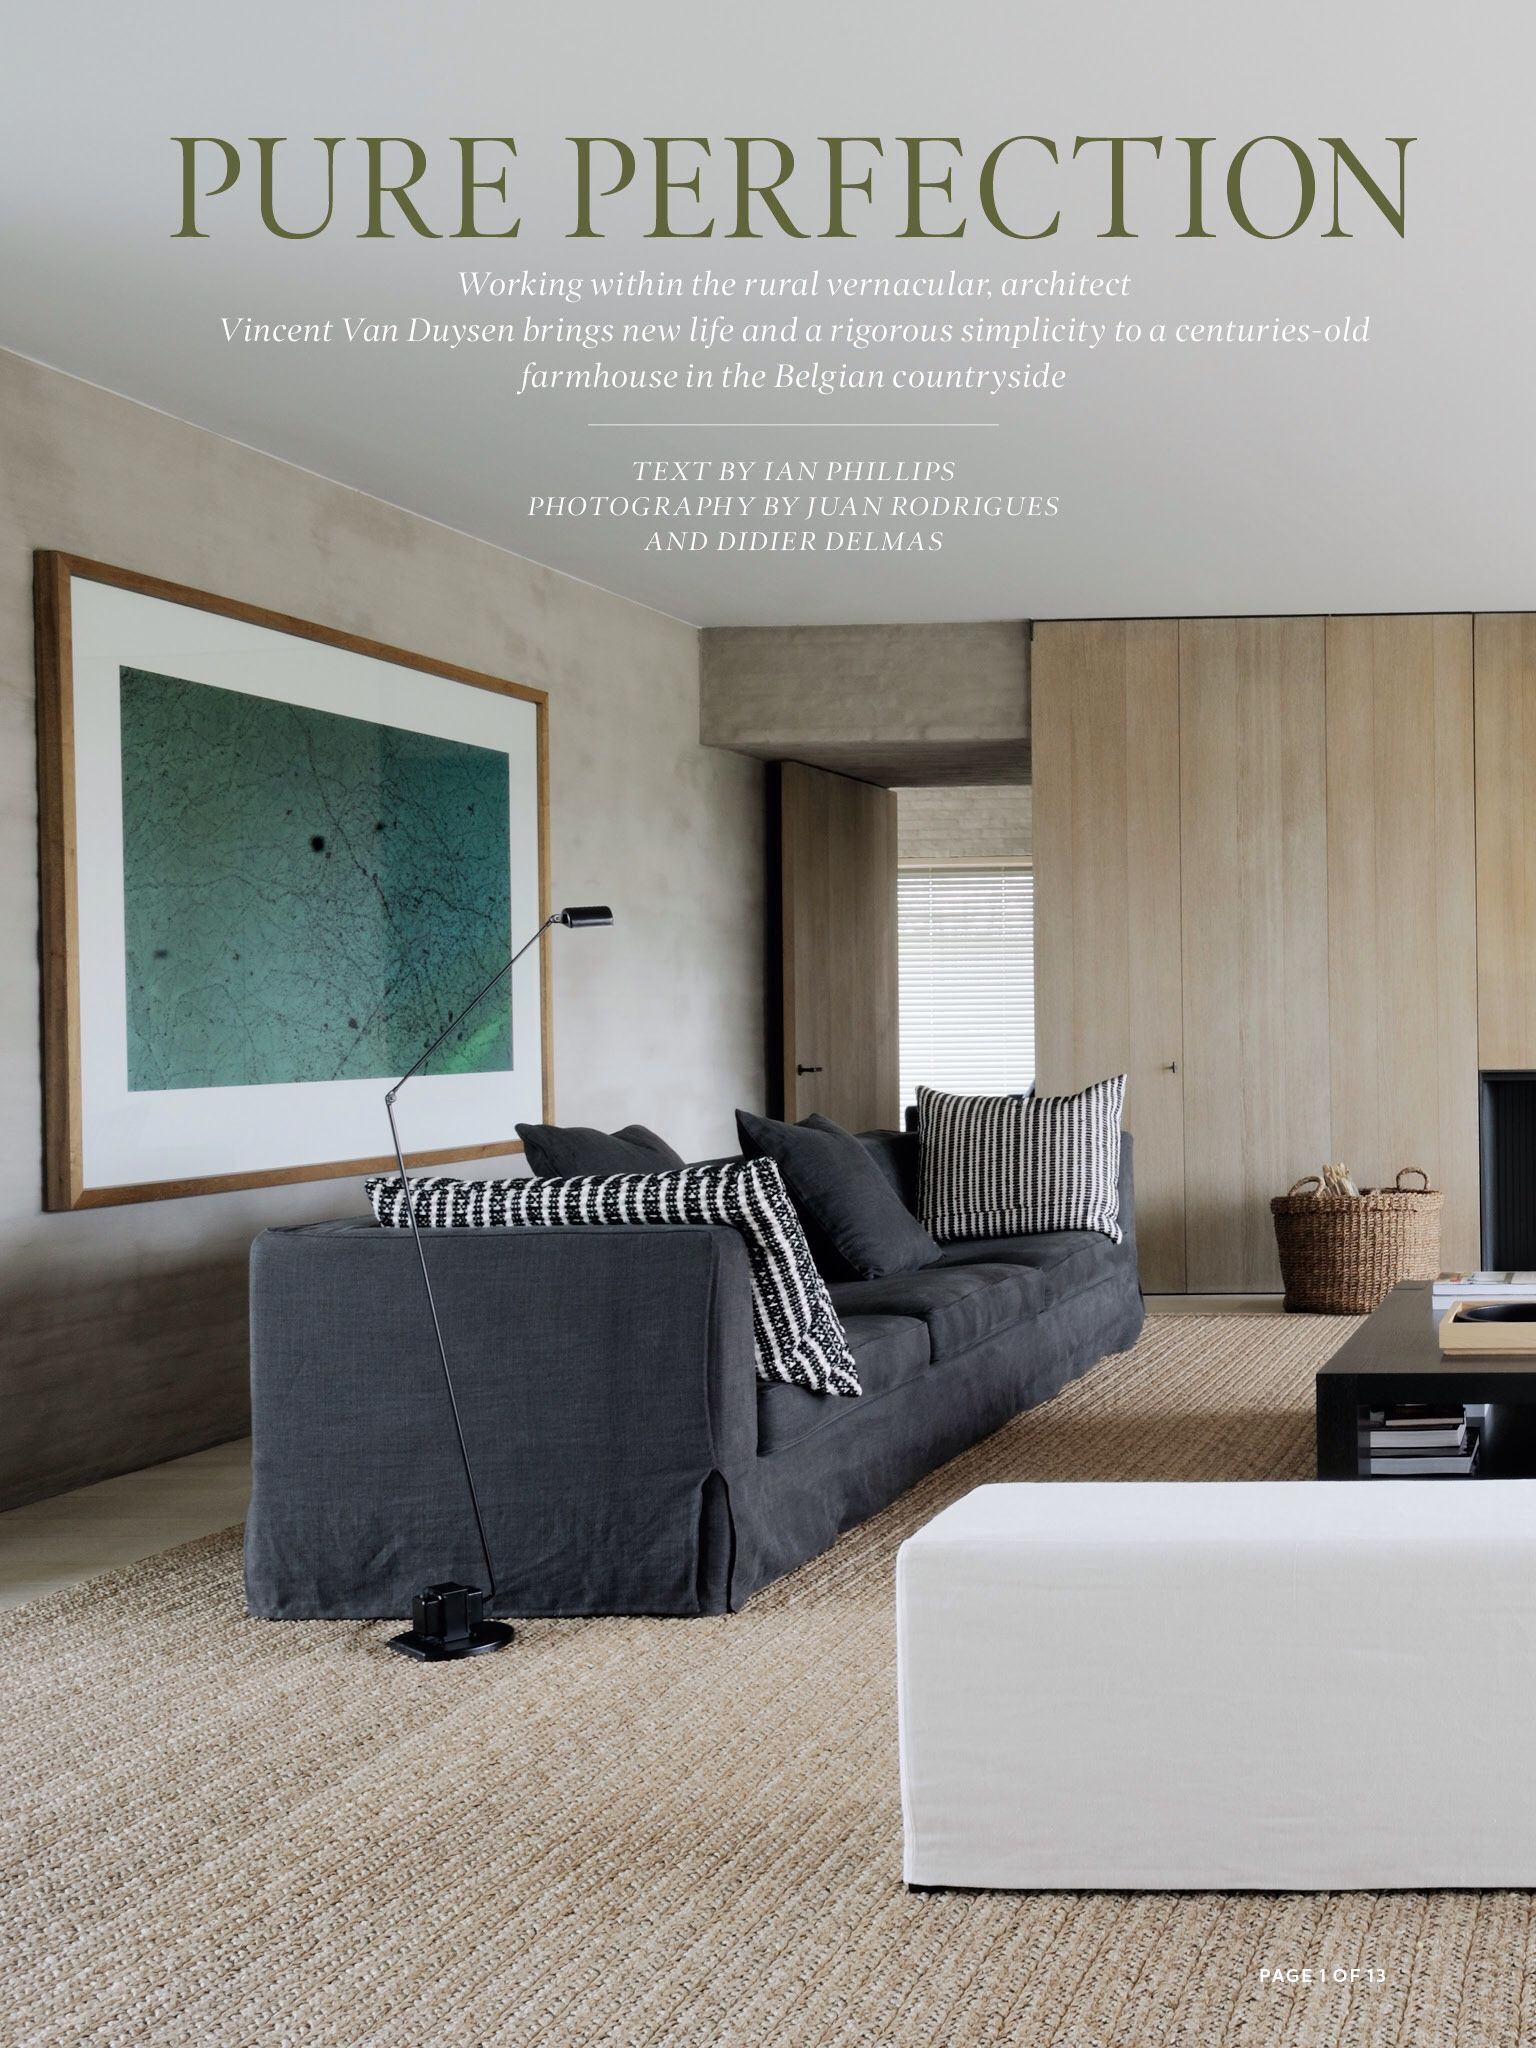 I saw this in the Jan/Feb 2015 issue of ELLE DECOR.   http://bit.ly/1pTydyx